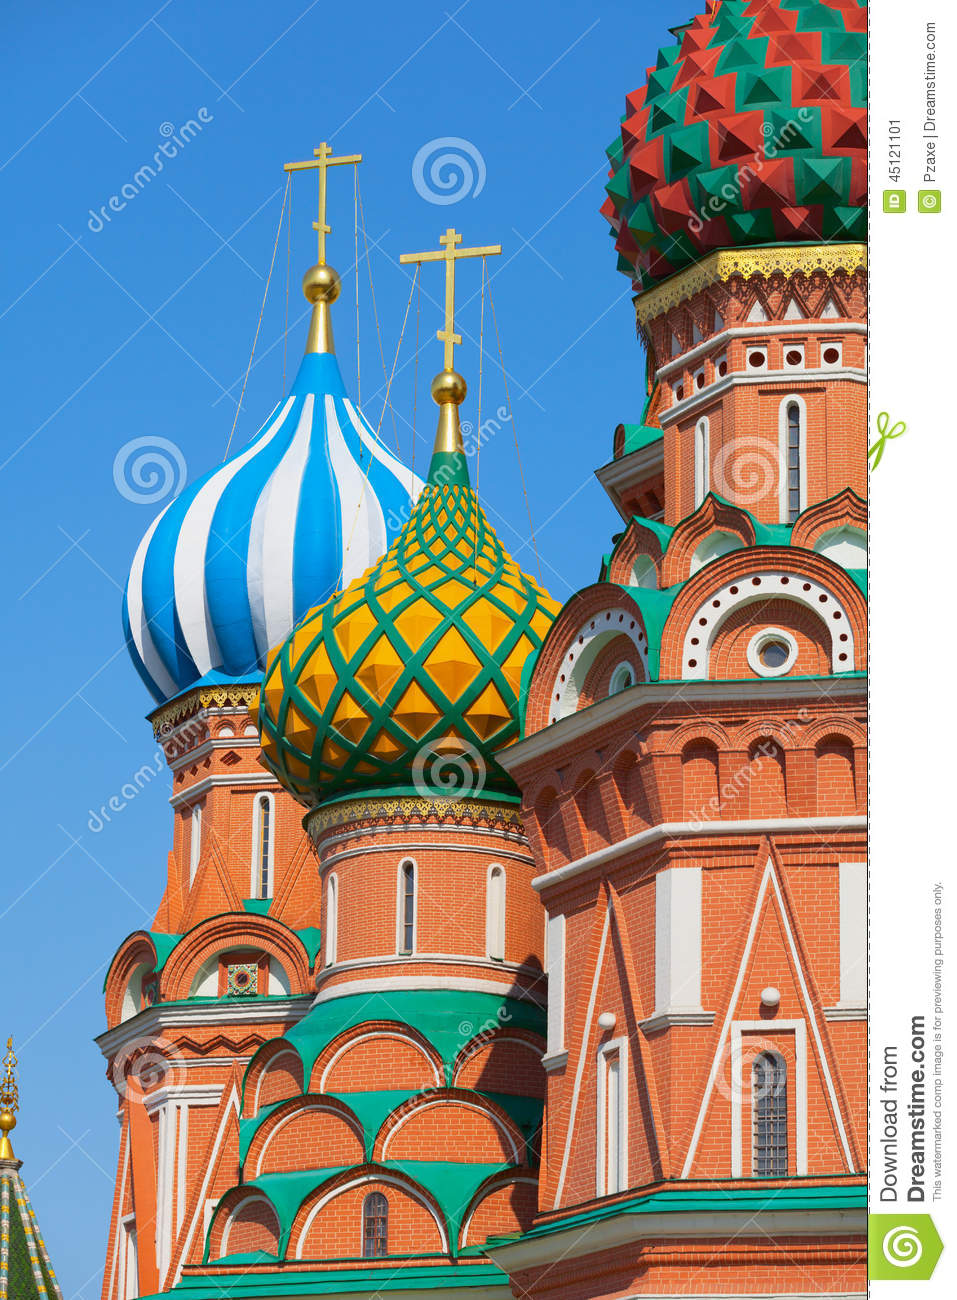 Saint Basil s Cathedral (Cathedral of Vasily the Blessed or Pokr